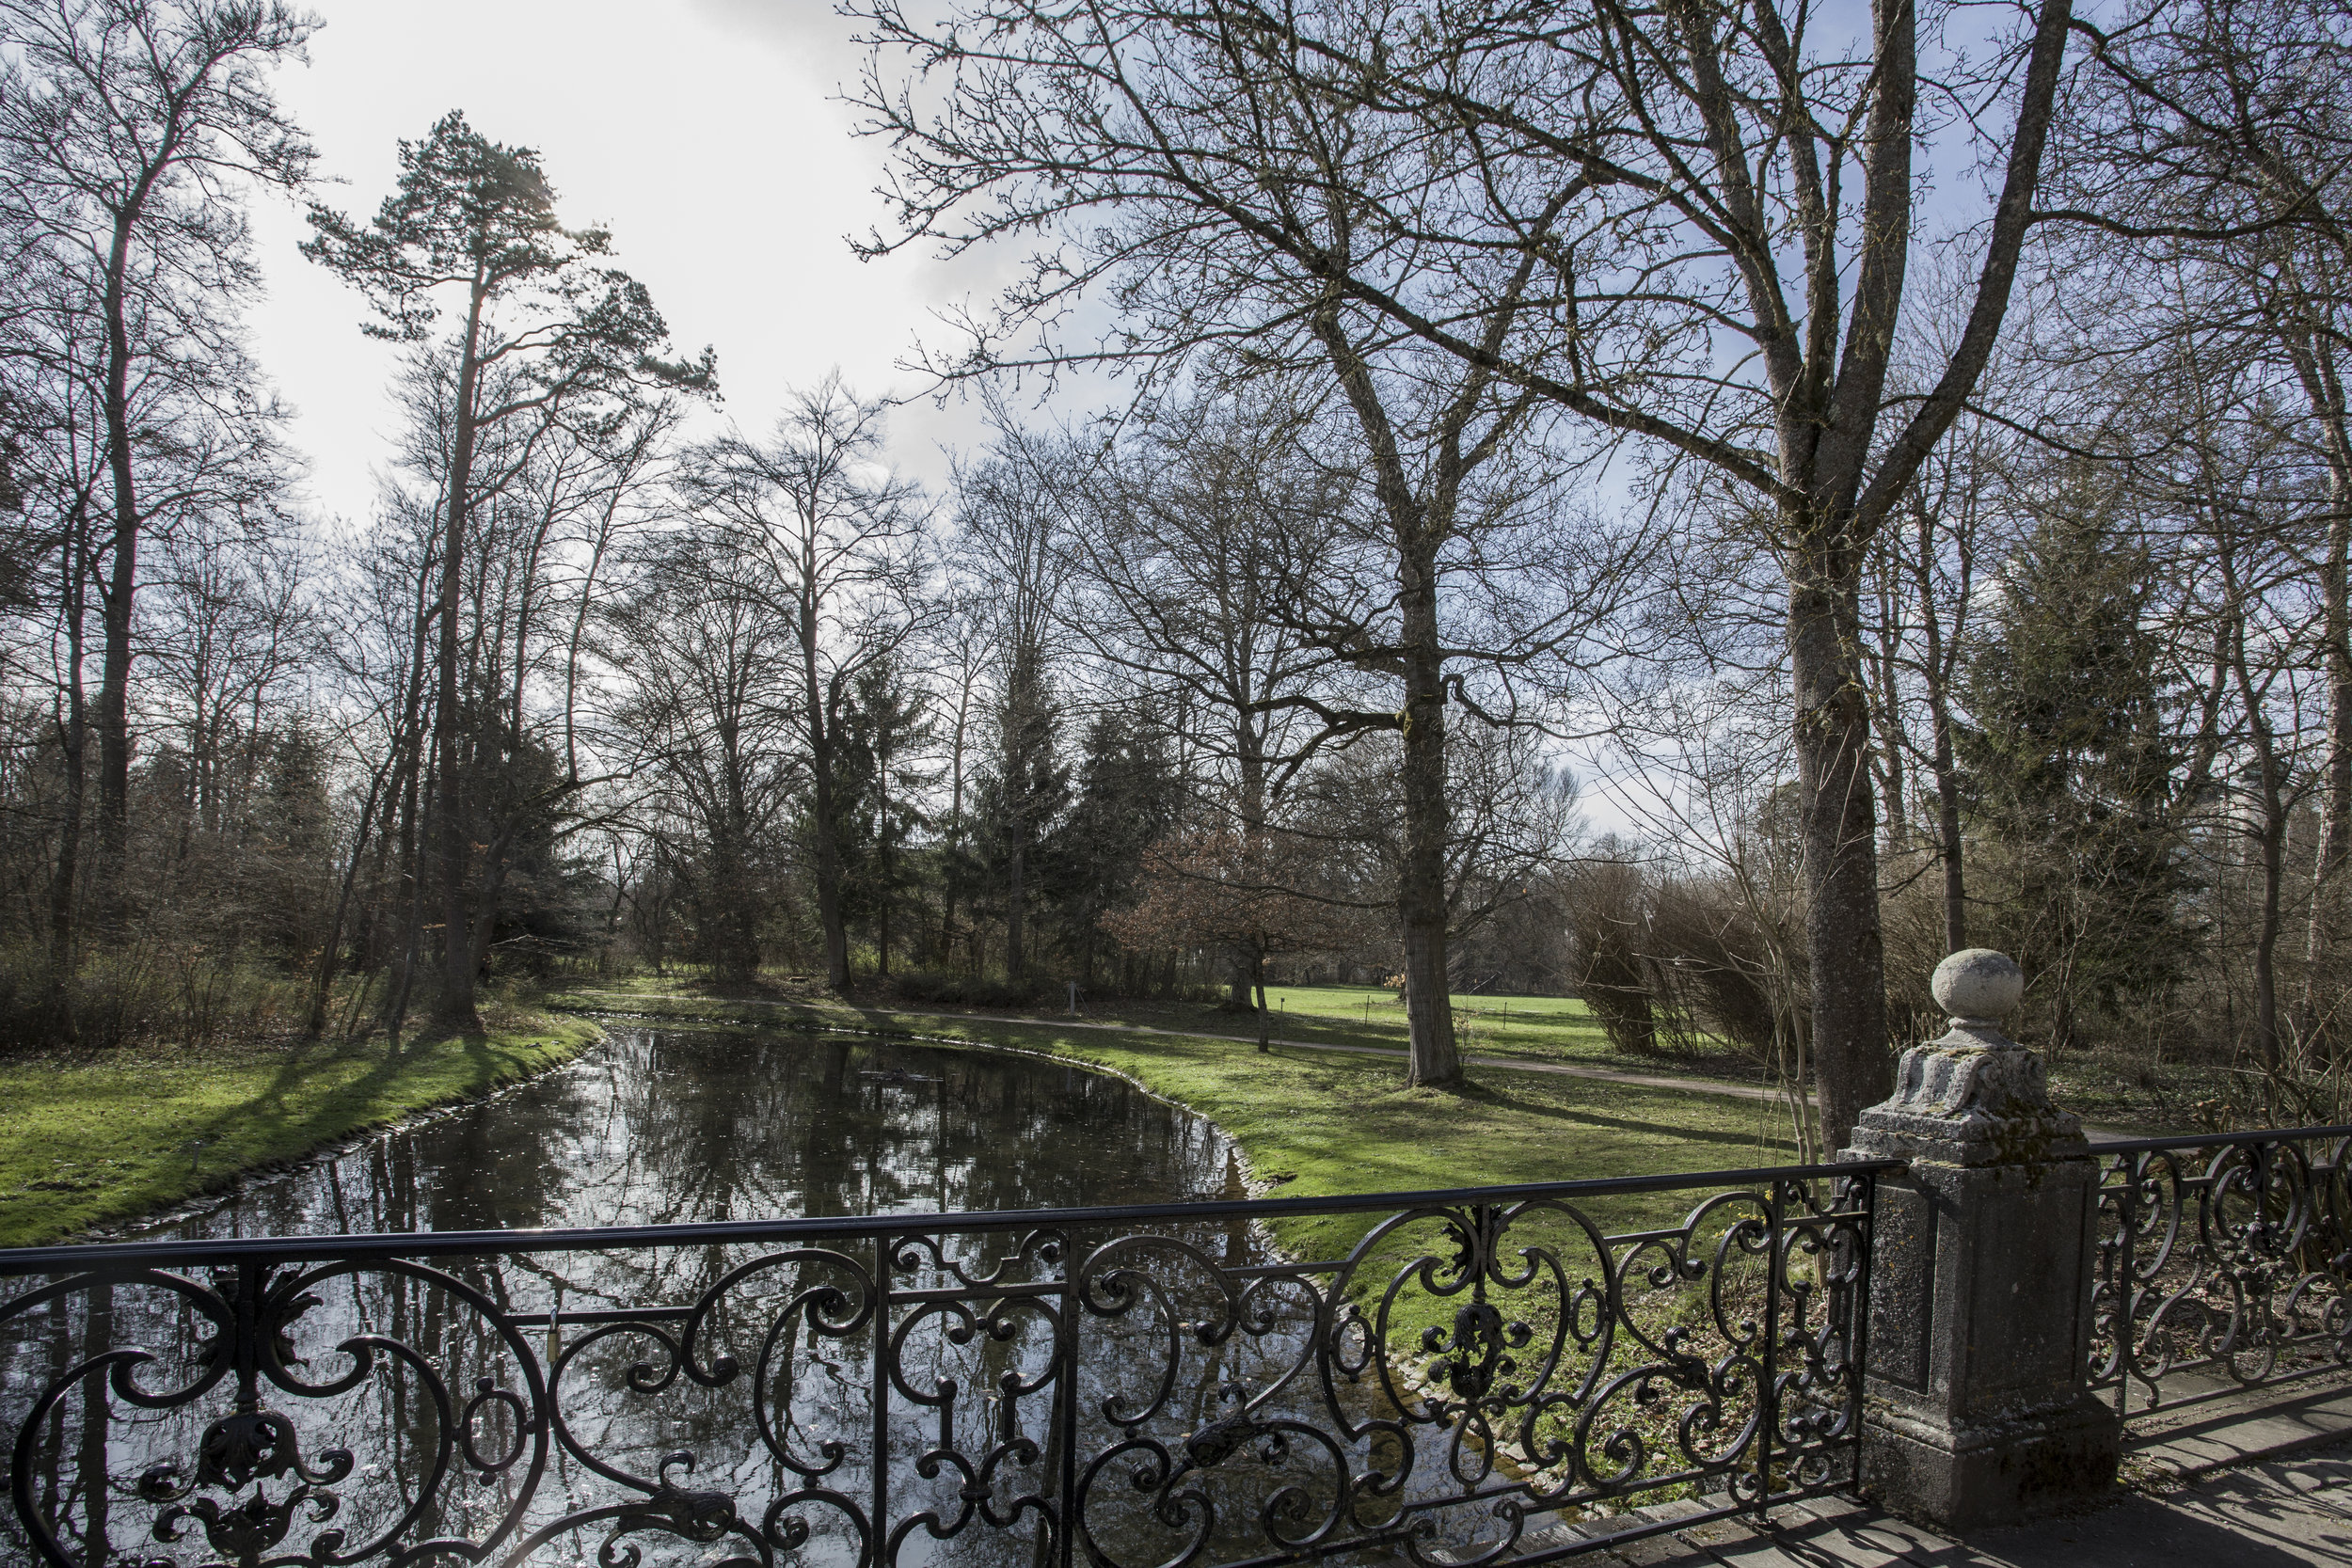 The charm of an exceedingly romantic park… the faded glories of a former German princely Court still haunt the groves and hedges like delicate, fleeting ghosts shrouded in nostalgia…